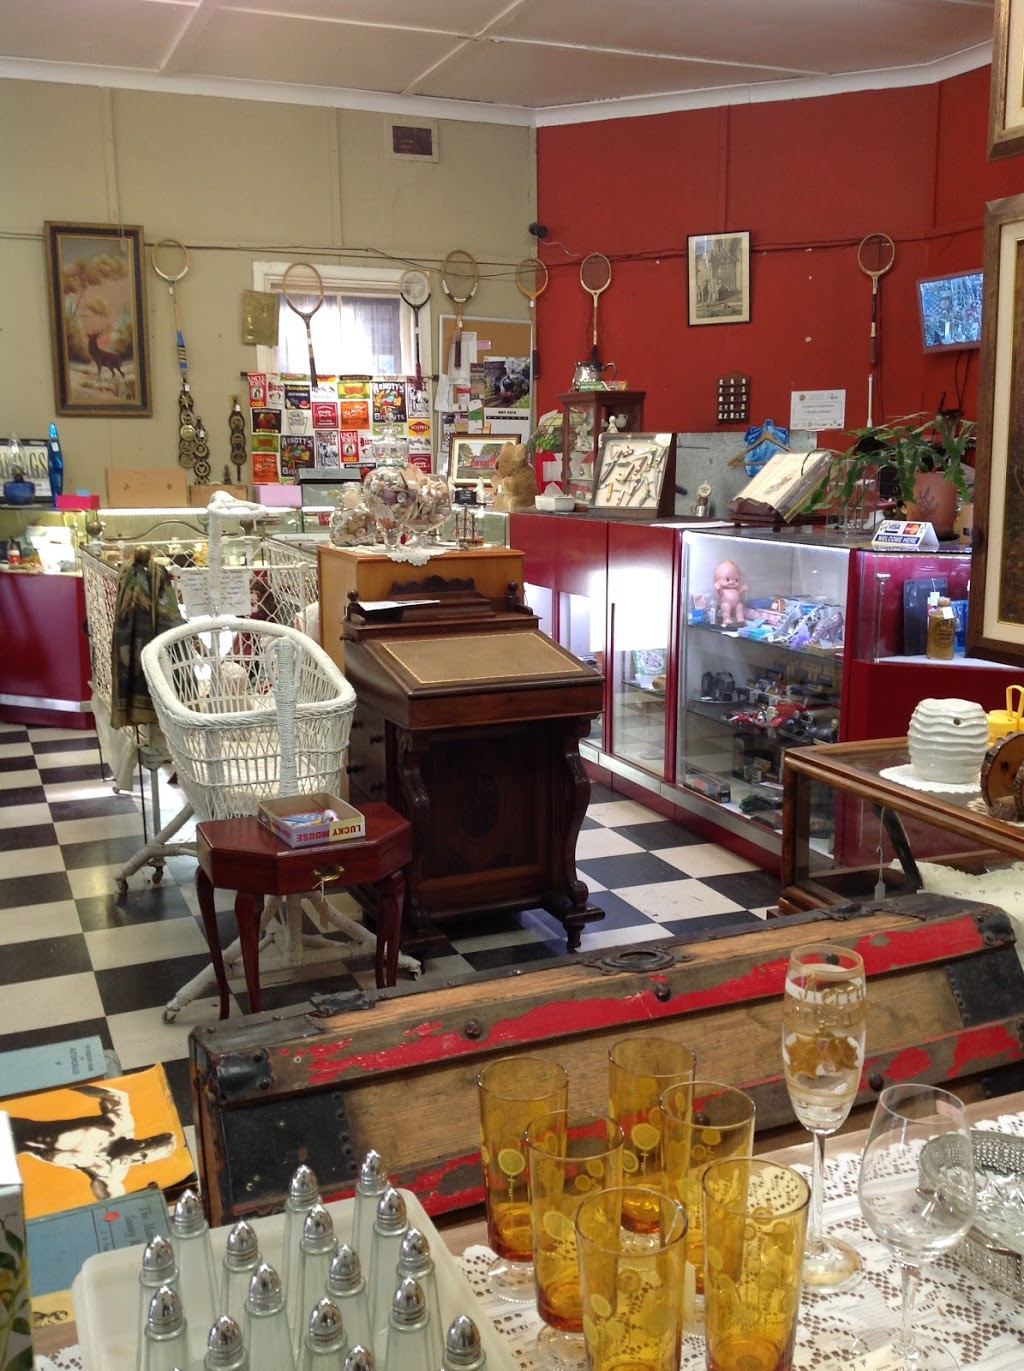 Cobwebs Antiques & Collectibles | furniture store | 88 Bridge St, Uralla NSW 2358, Australia | 0412017008 OR +61 412 017 008